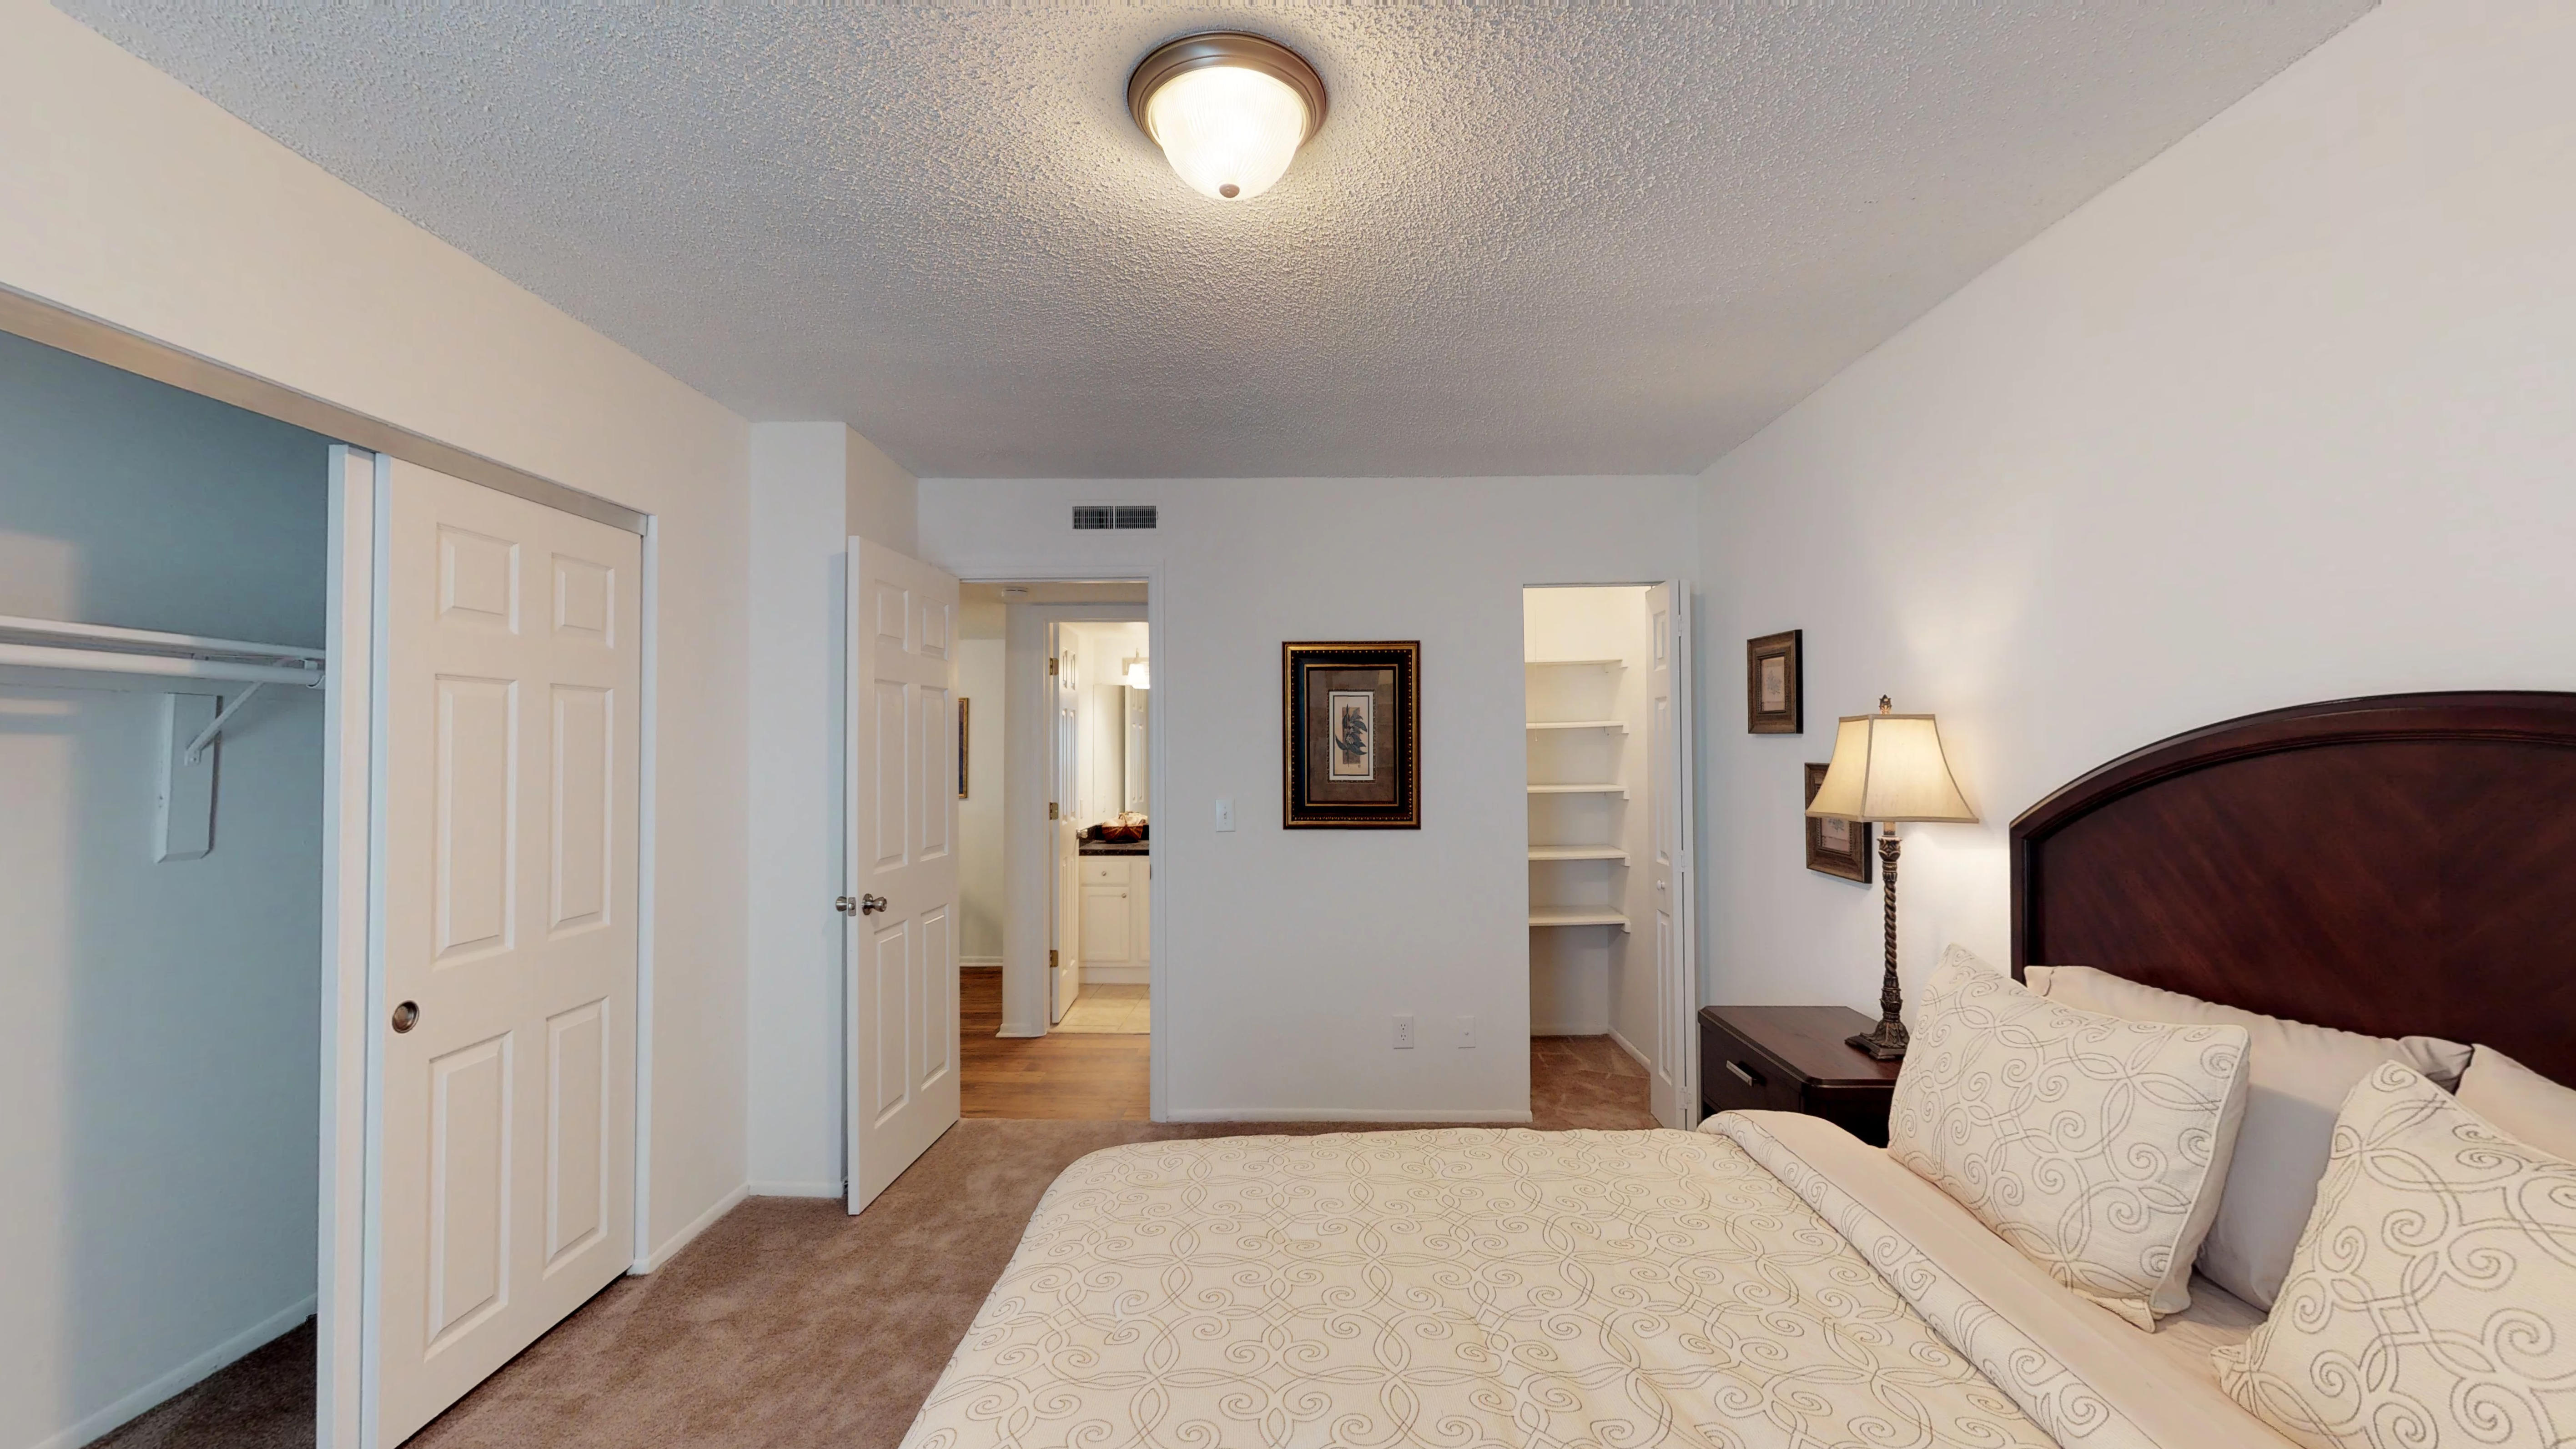 Woodlake-Villas-1-Bed-1-Bath-706B-07202018_092049